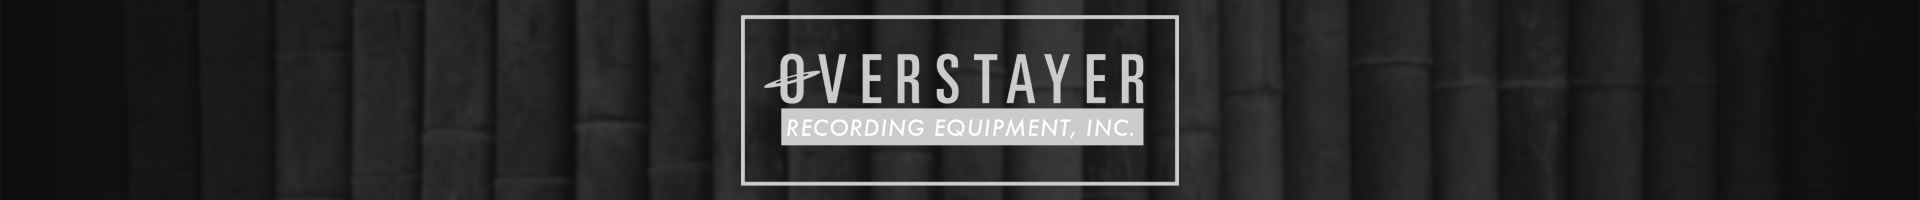 Overstayer Recording Equipment